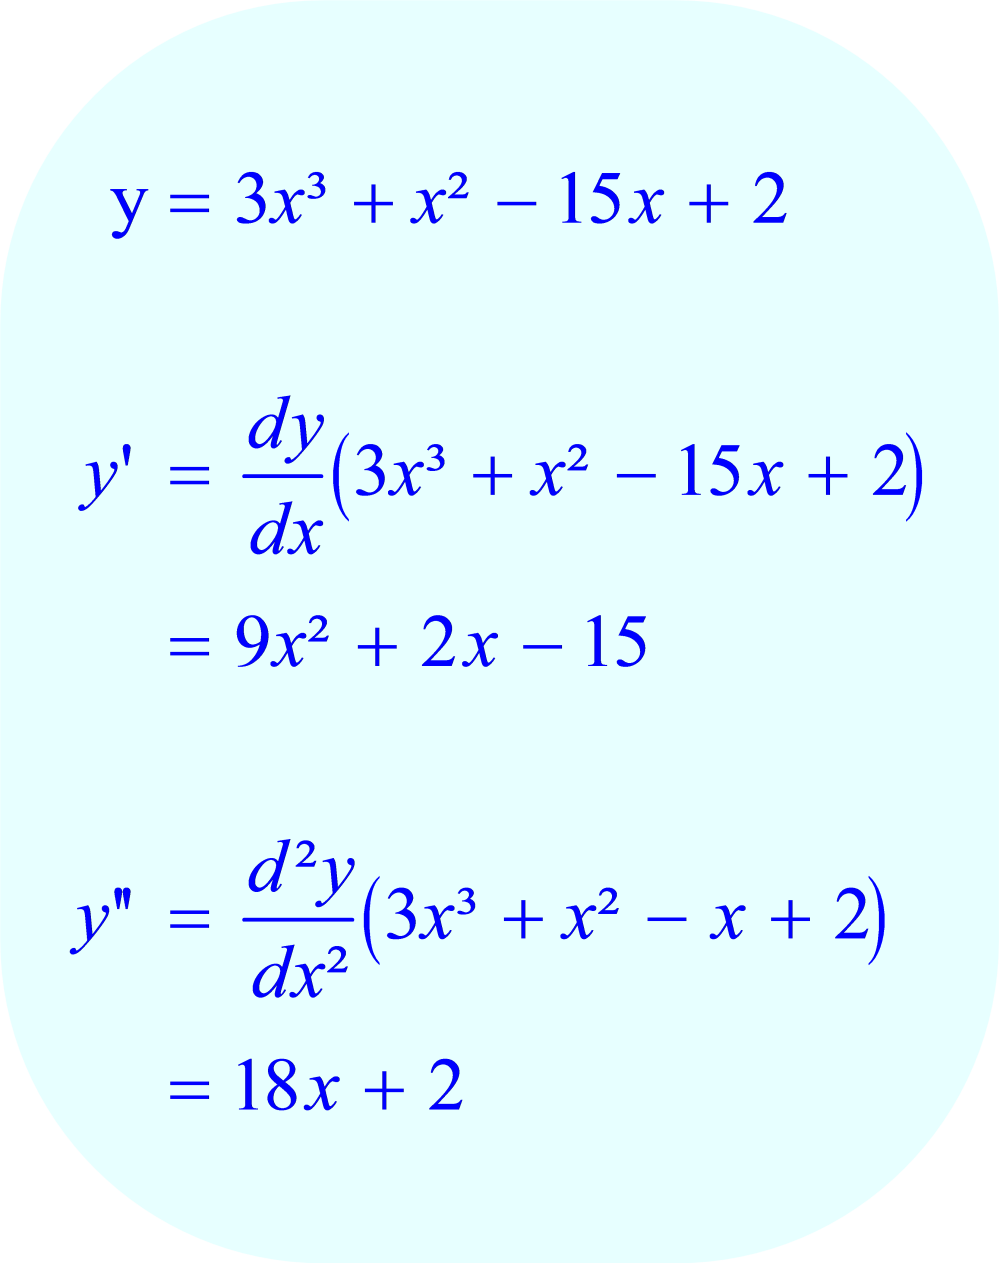 First and Second Derivatives of f(x) = 3x³ + x² - 15x + 2